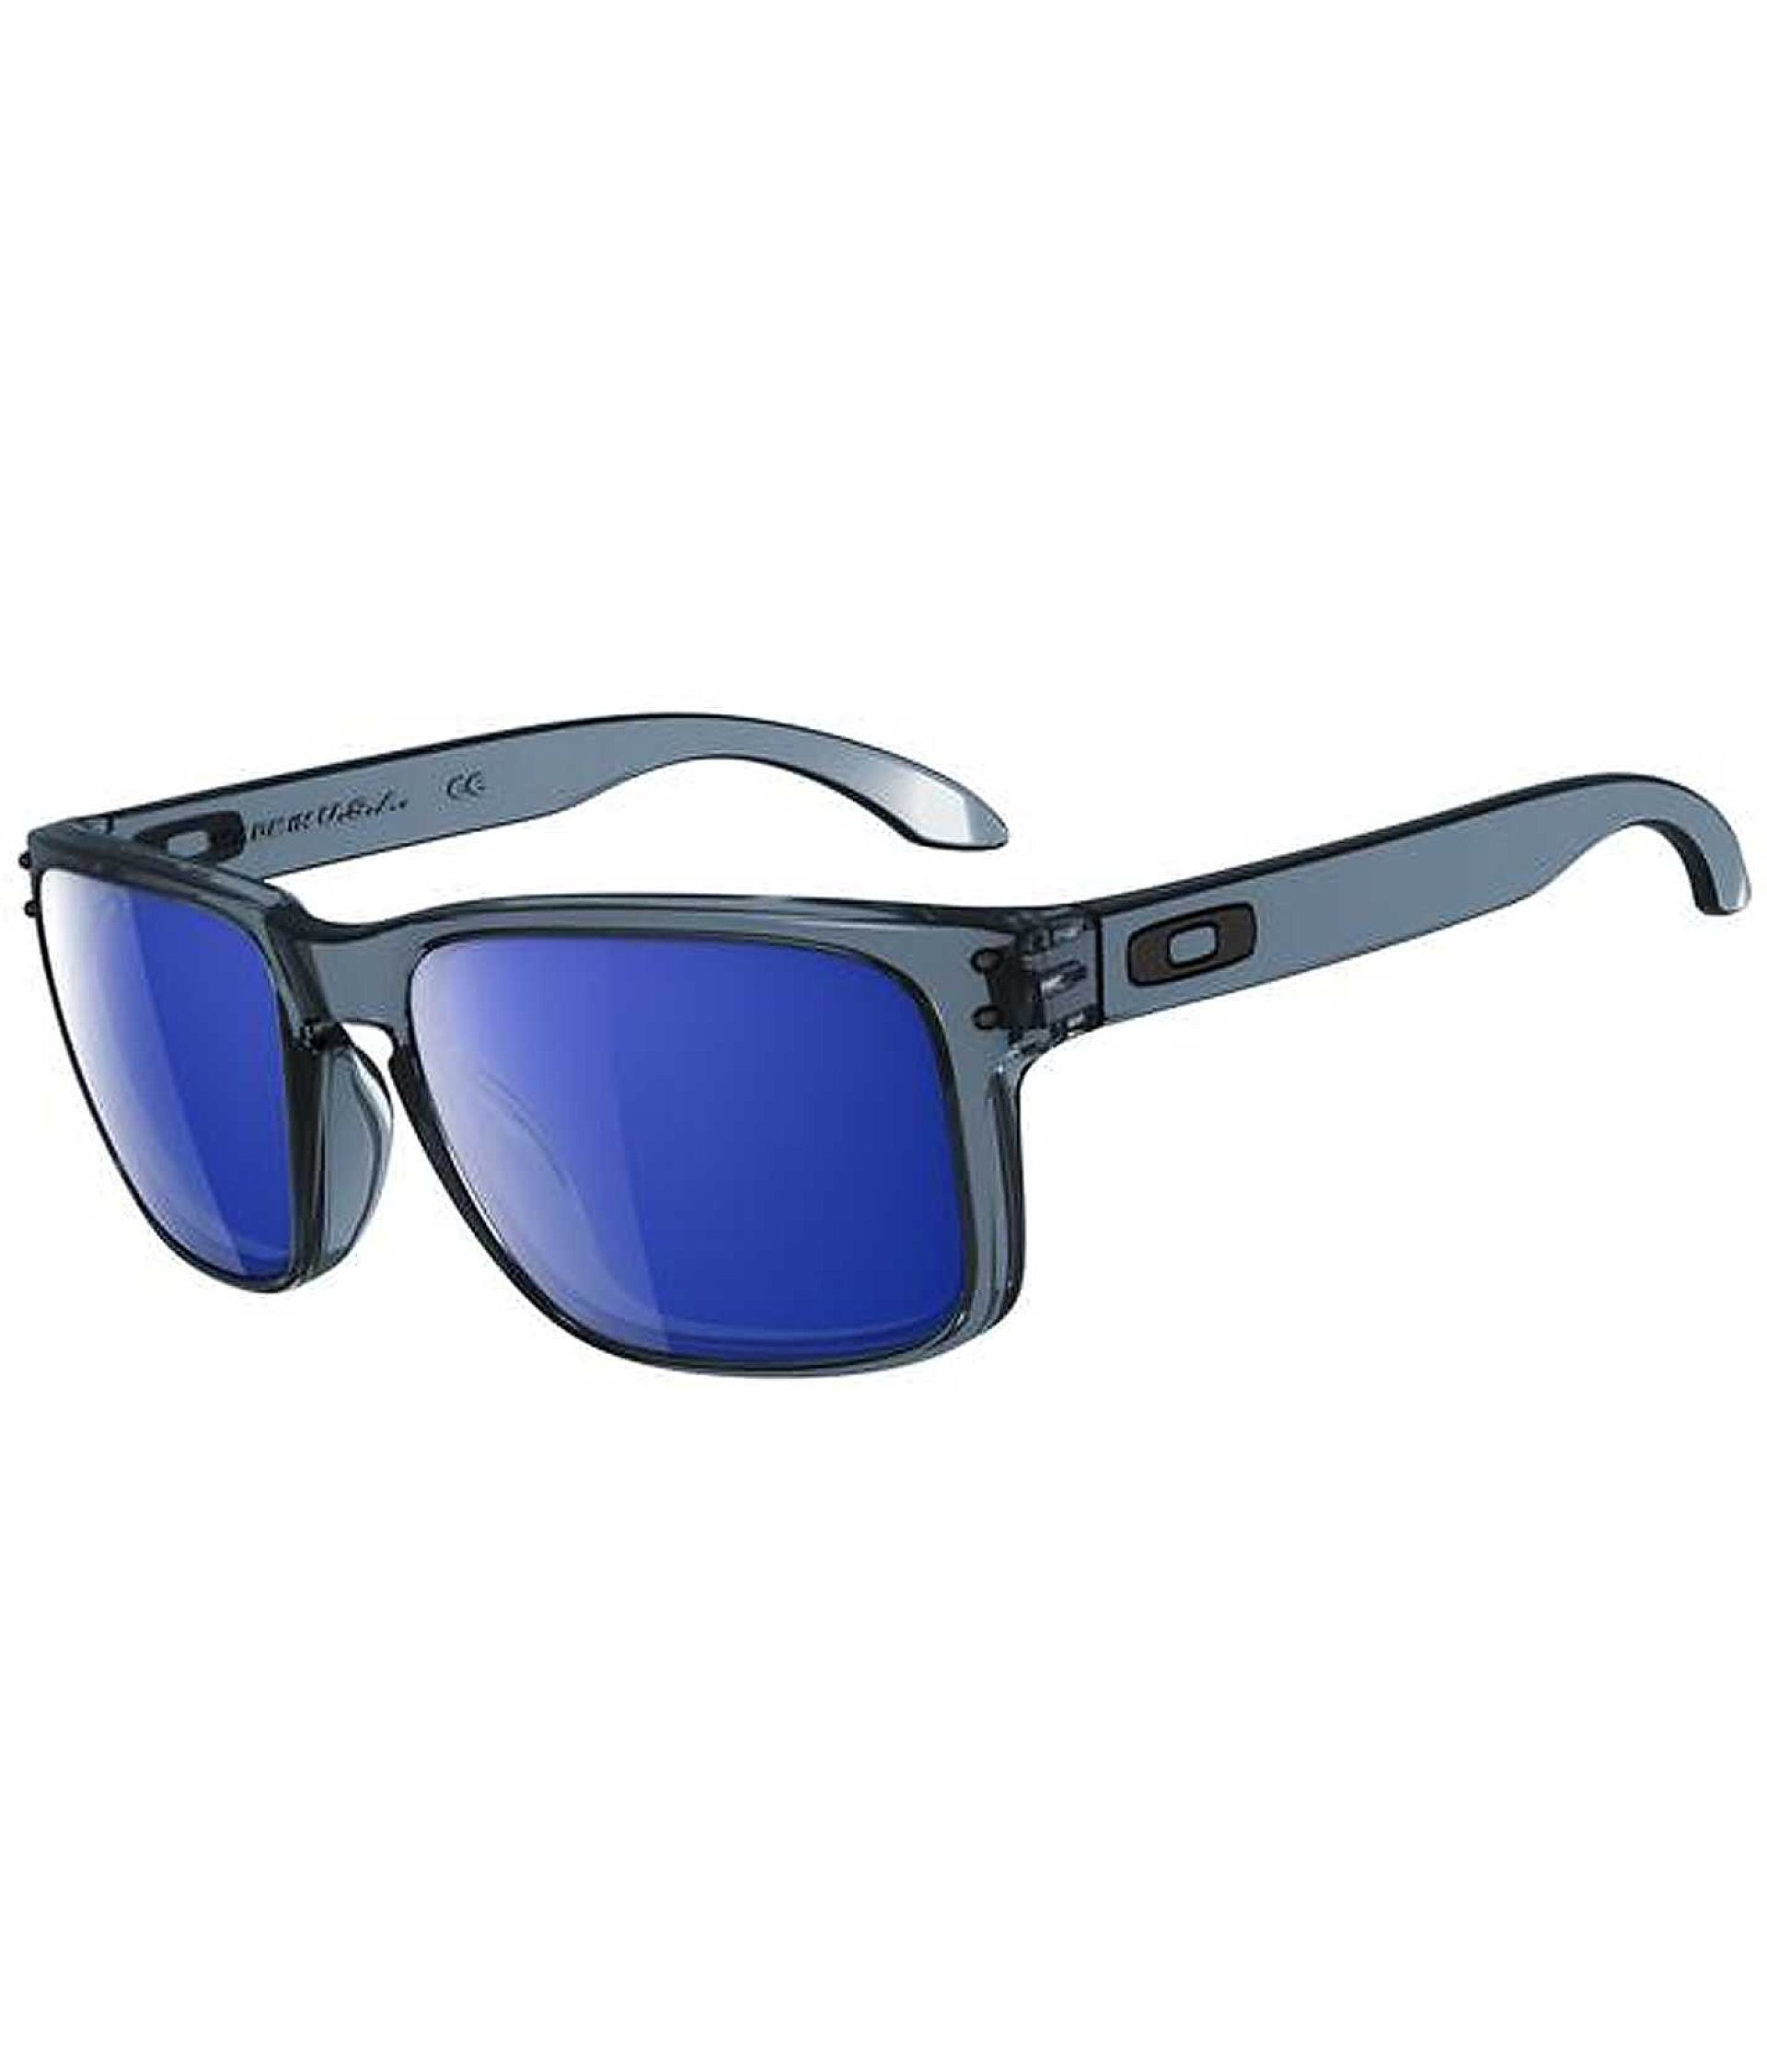 88b710dc1f2 Oakley Holbrook Sunglasses - Men s Accessories in Crystal Blk ...